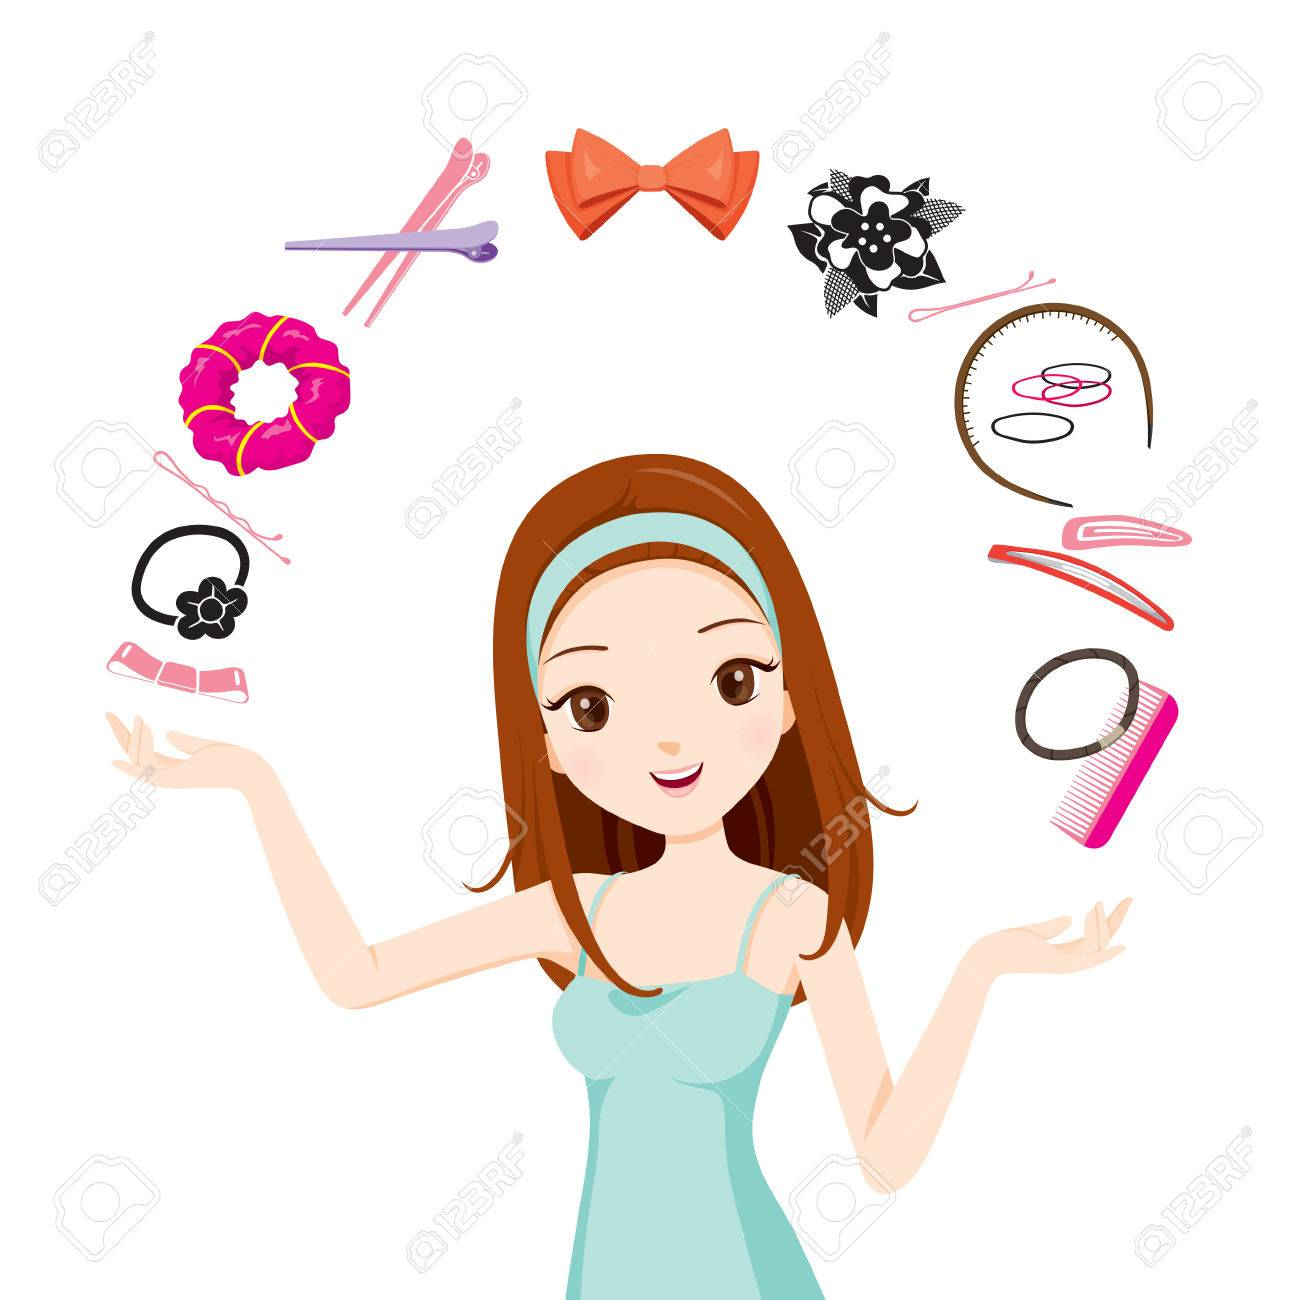 Girl With Hair Accessories Accessories Coiffure Hairdressing Royalty Free Cliparts Vectors And Stock Illustration Image 54560345